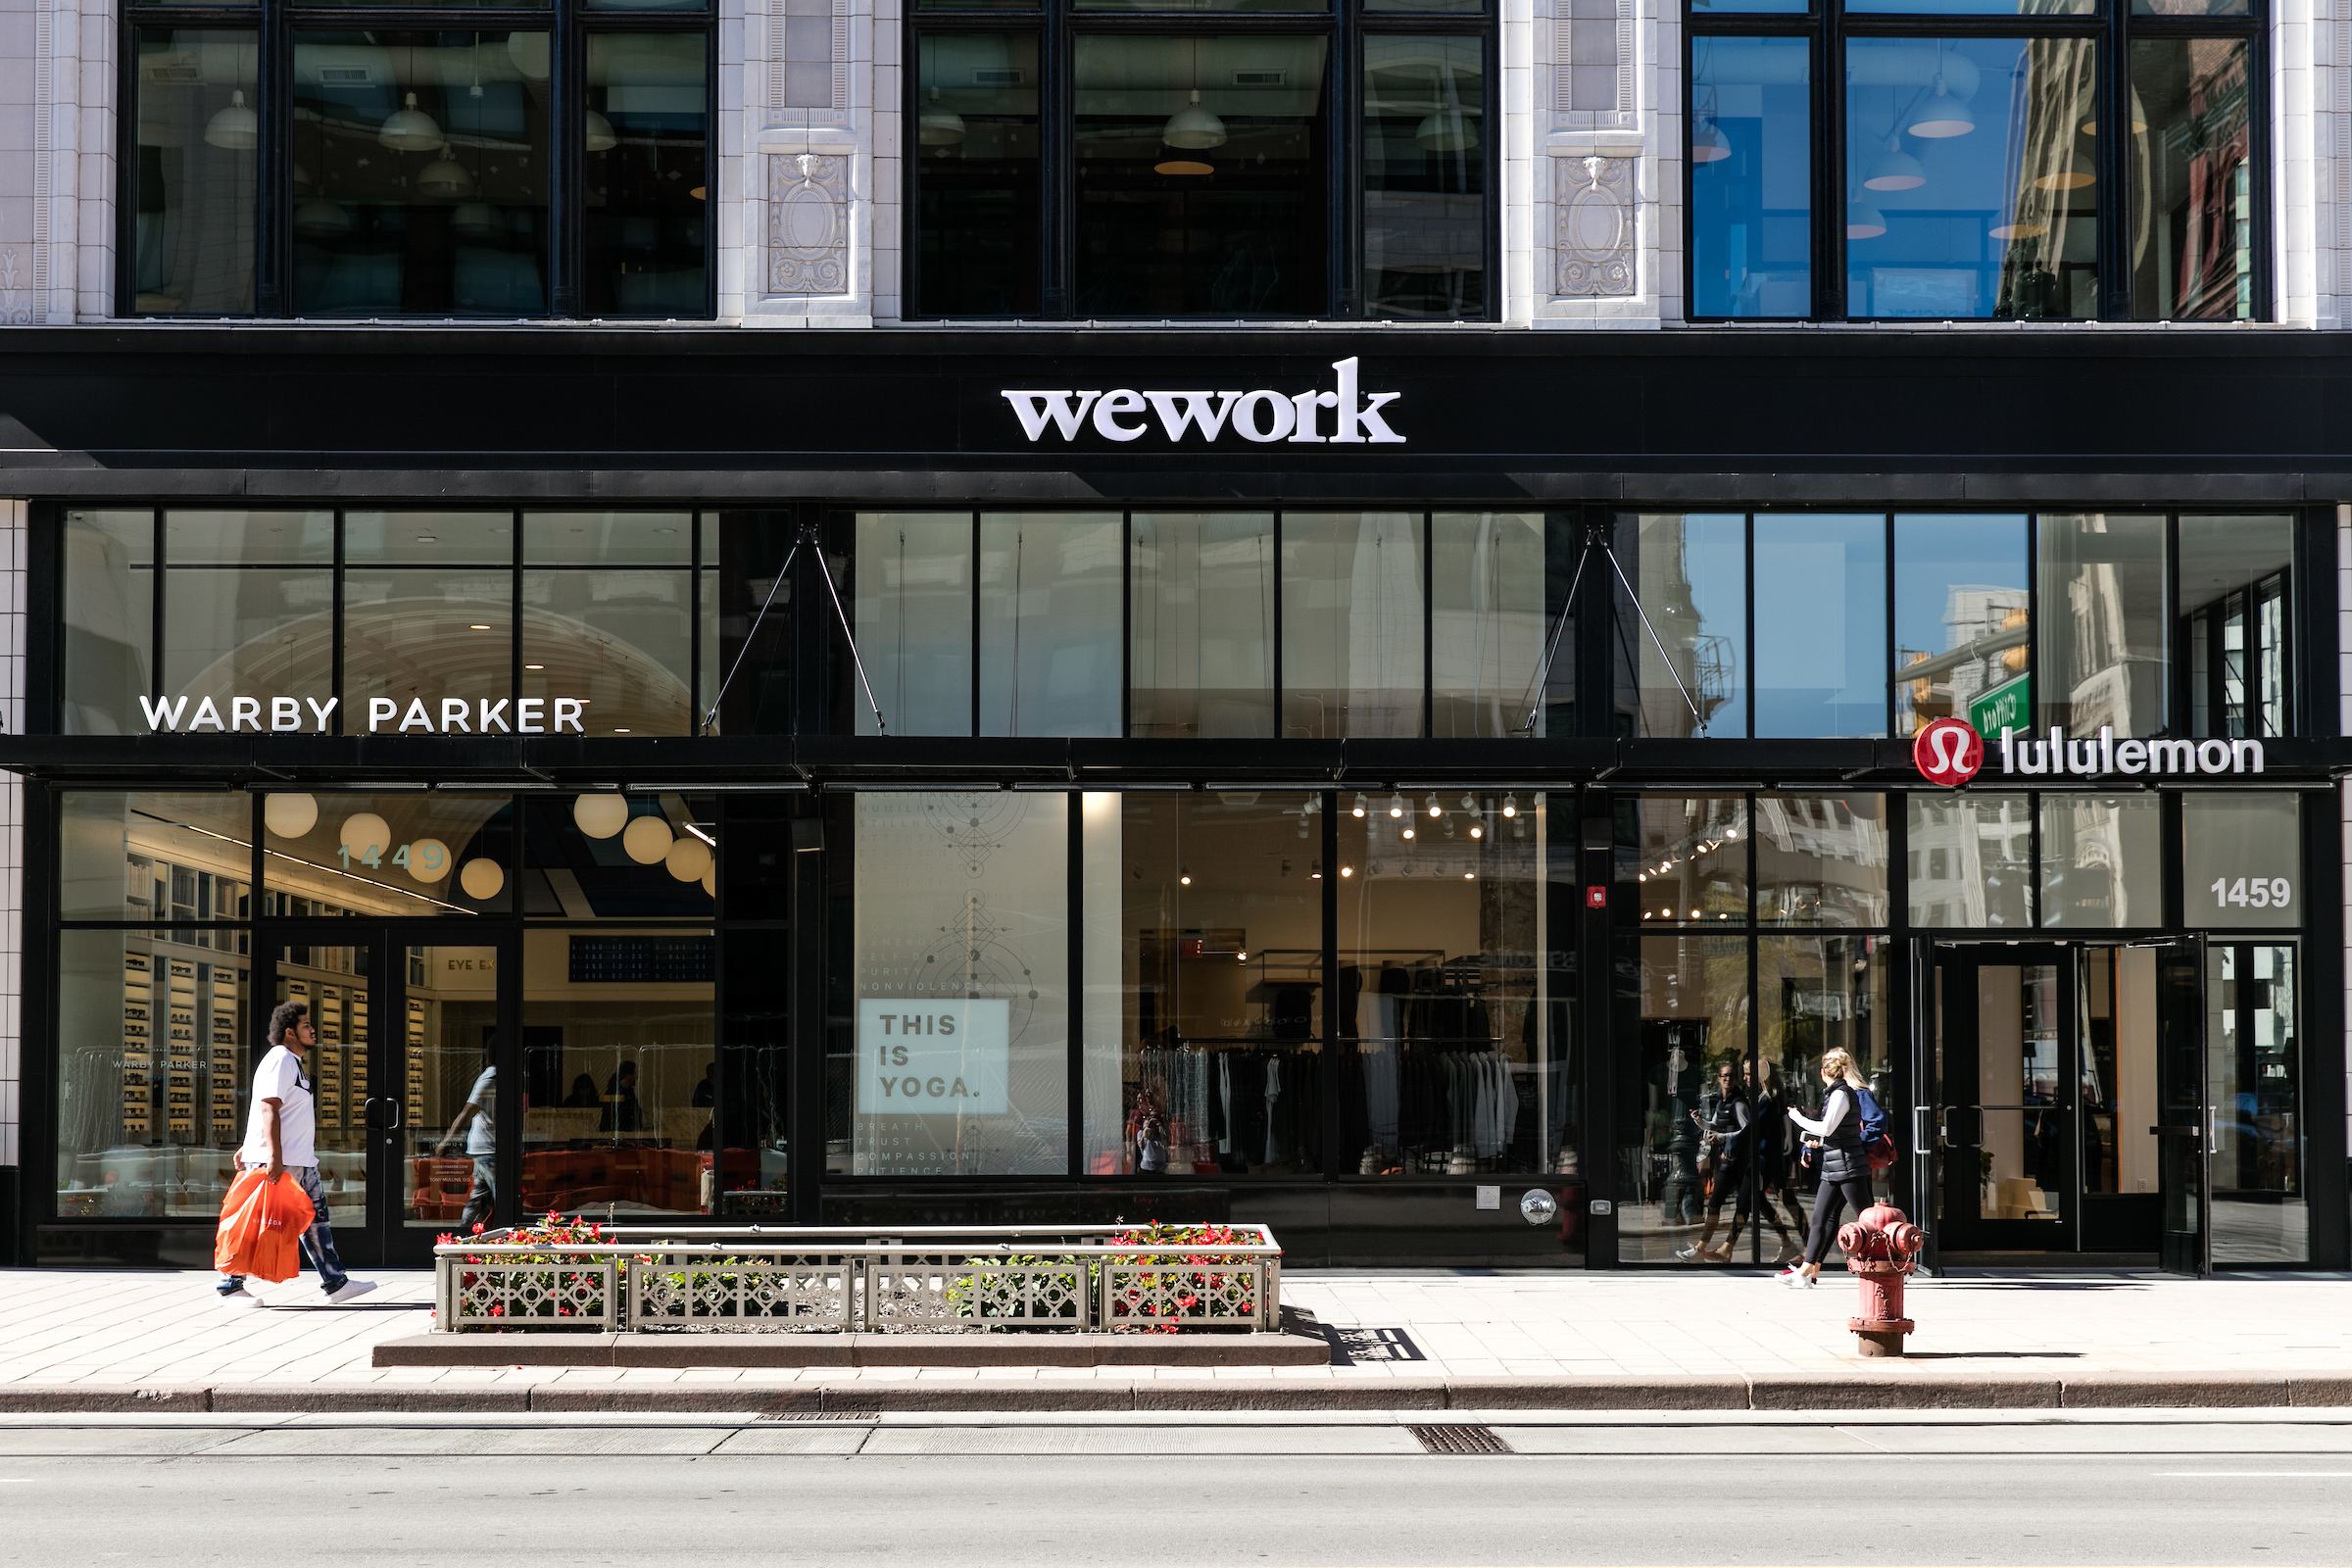 View from the street of the first two floors of a large building. There's three stores on the ground-floor: Warby Parker, WeWork, and Lululemon. The second floors have windows separated by white marble.